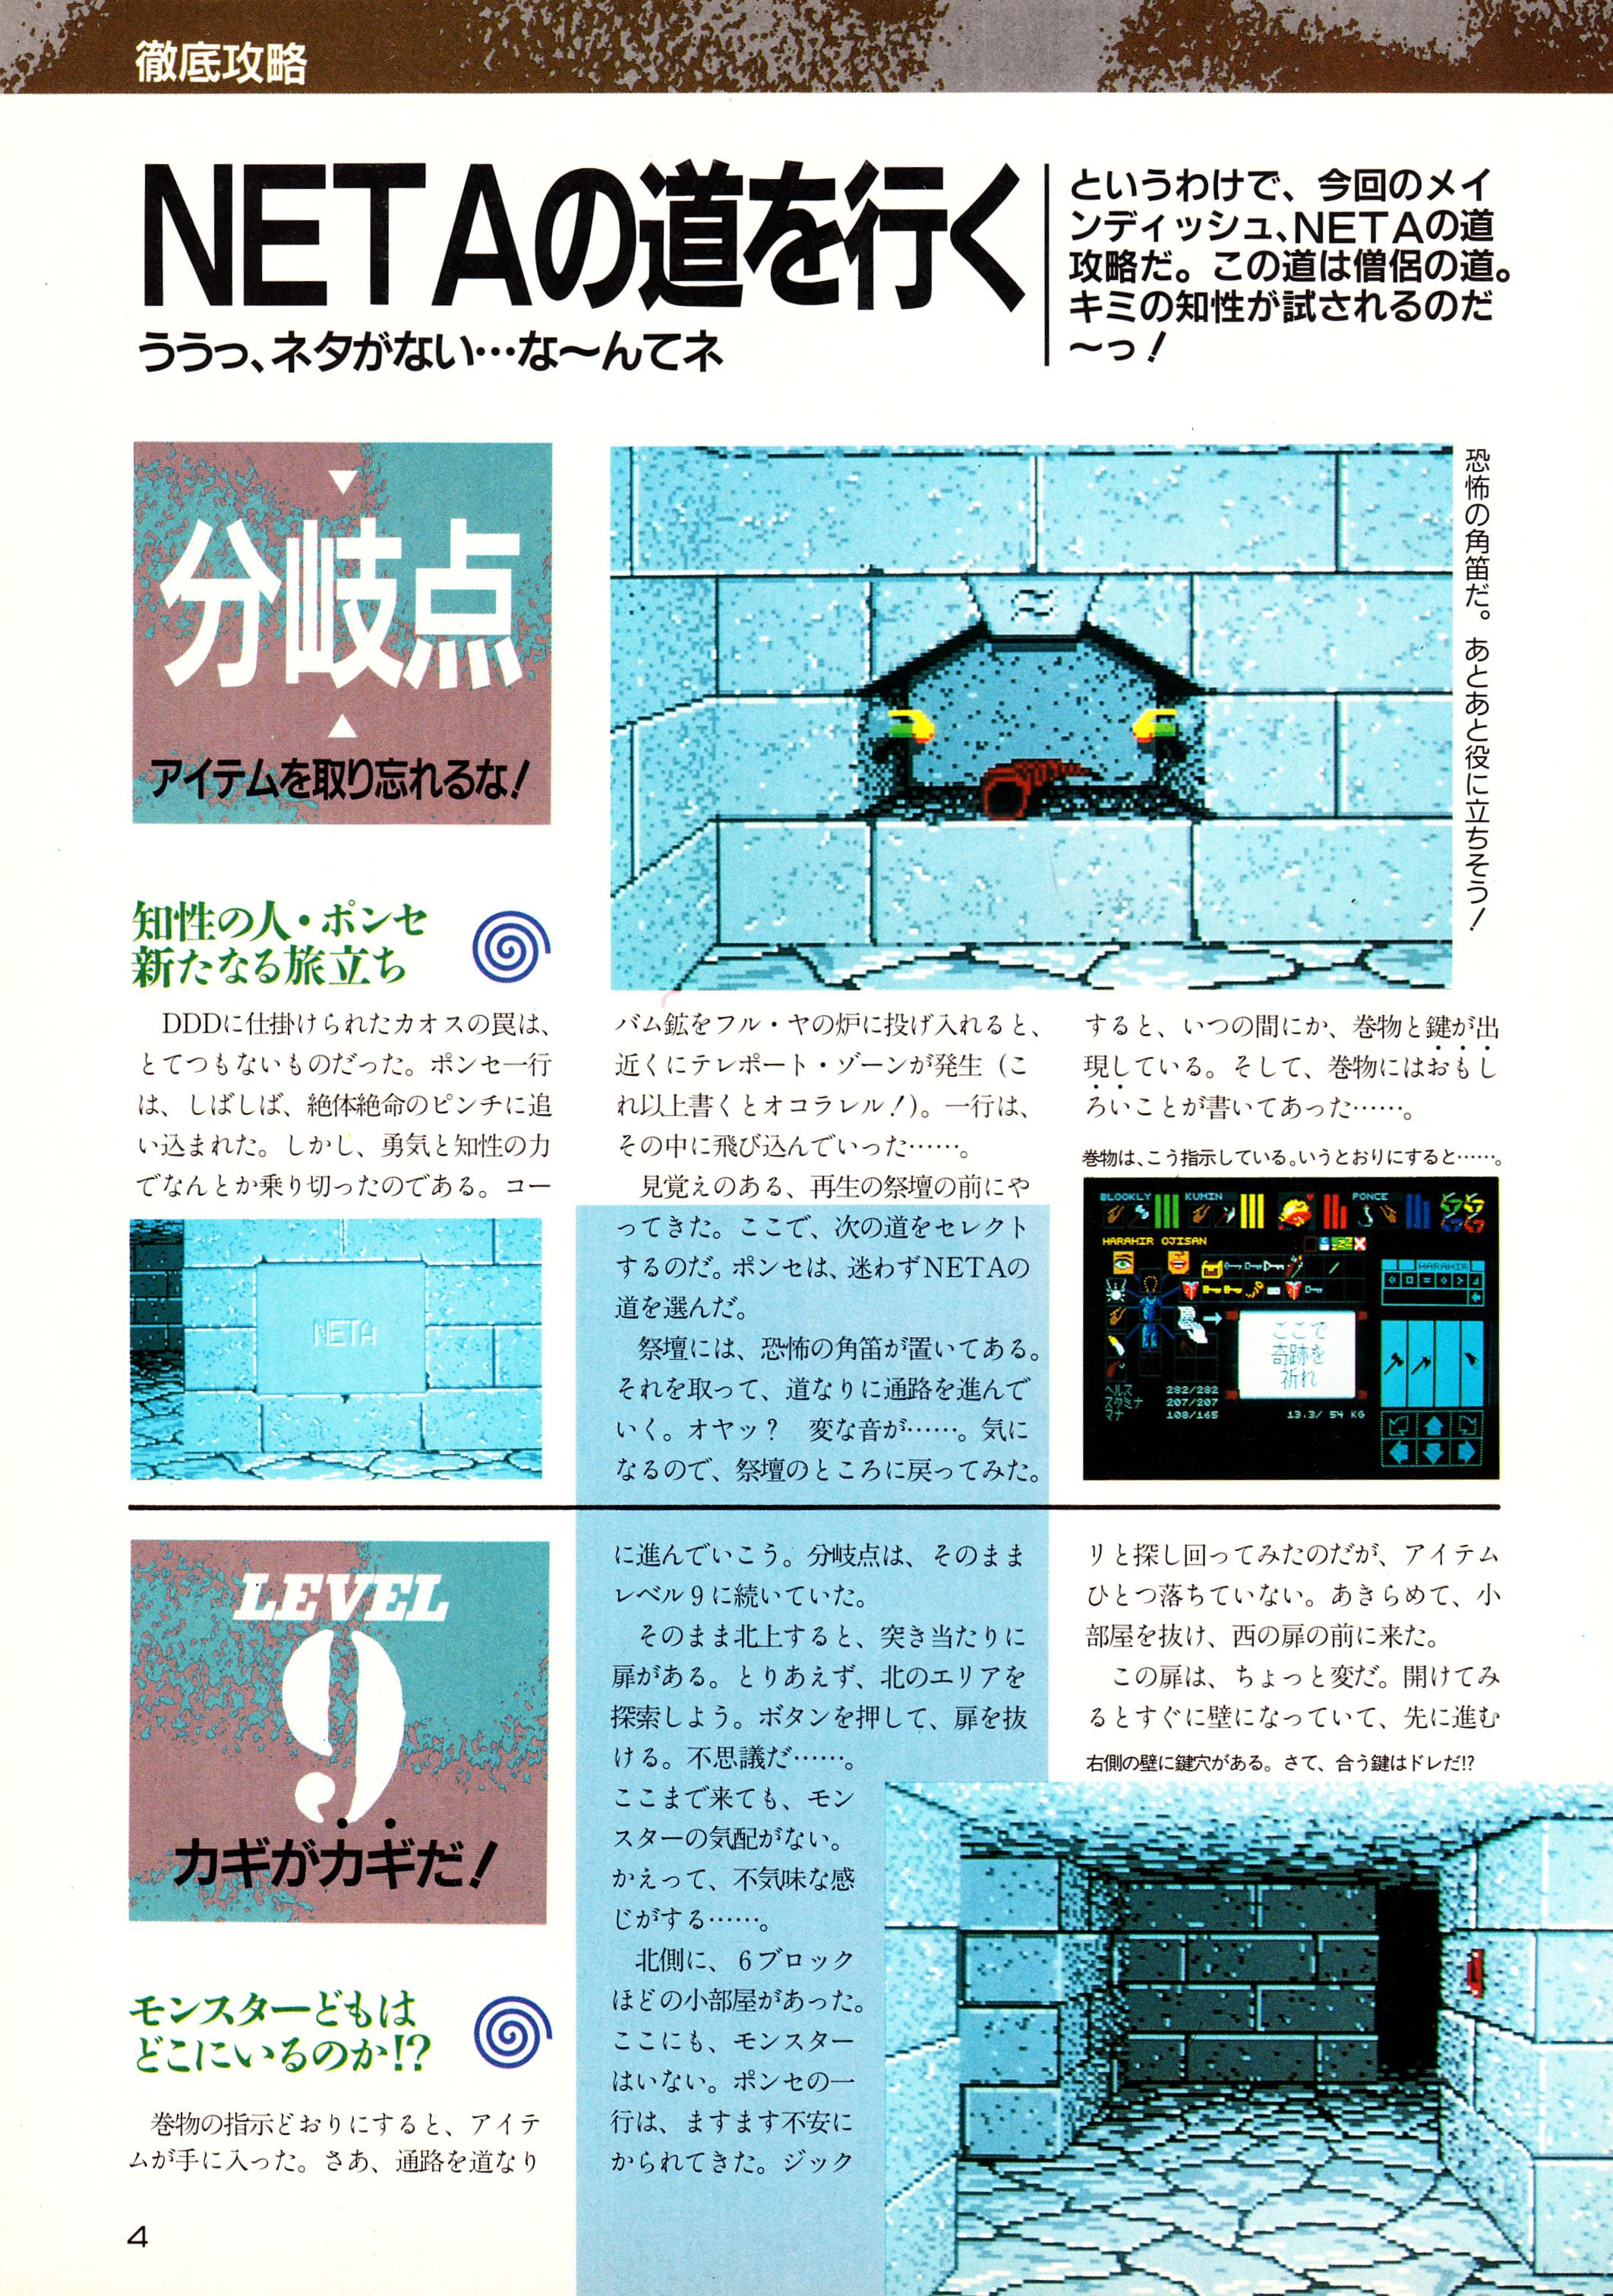 Supplement - Chaos Strikes Back Companion Guide II Guide published in Japanese magazine 'Popcom', Vol 9 No 3 01 March 1991, Page 6